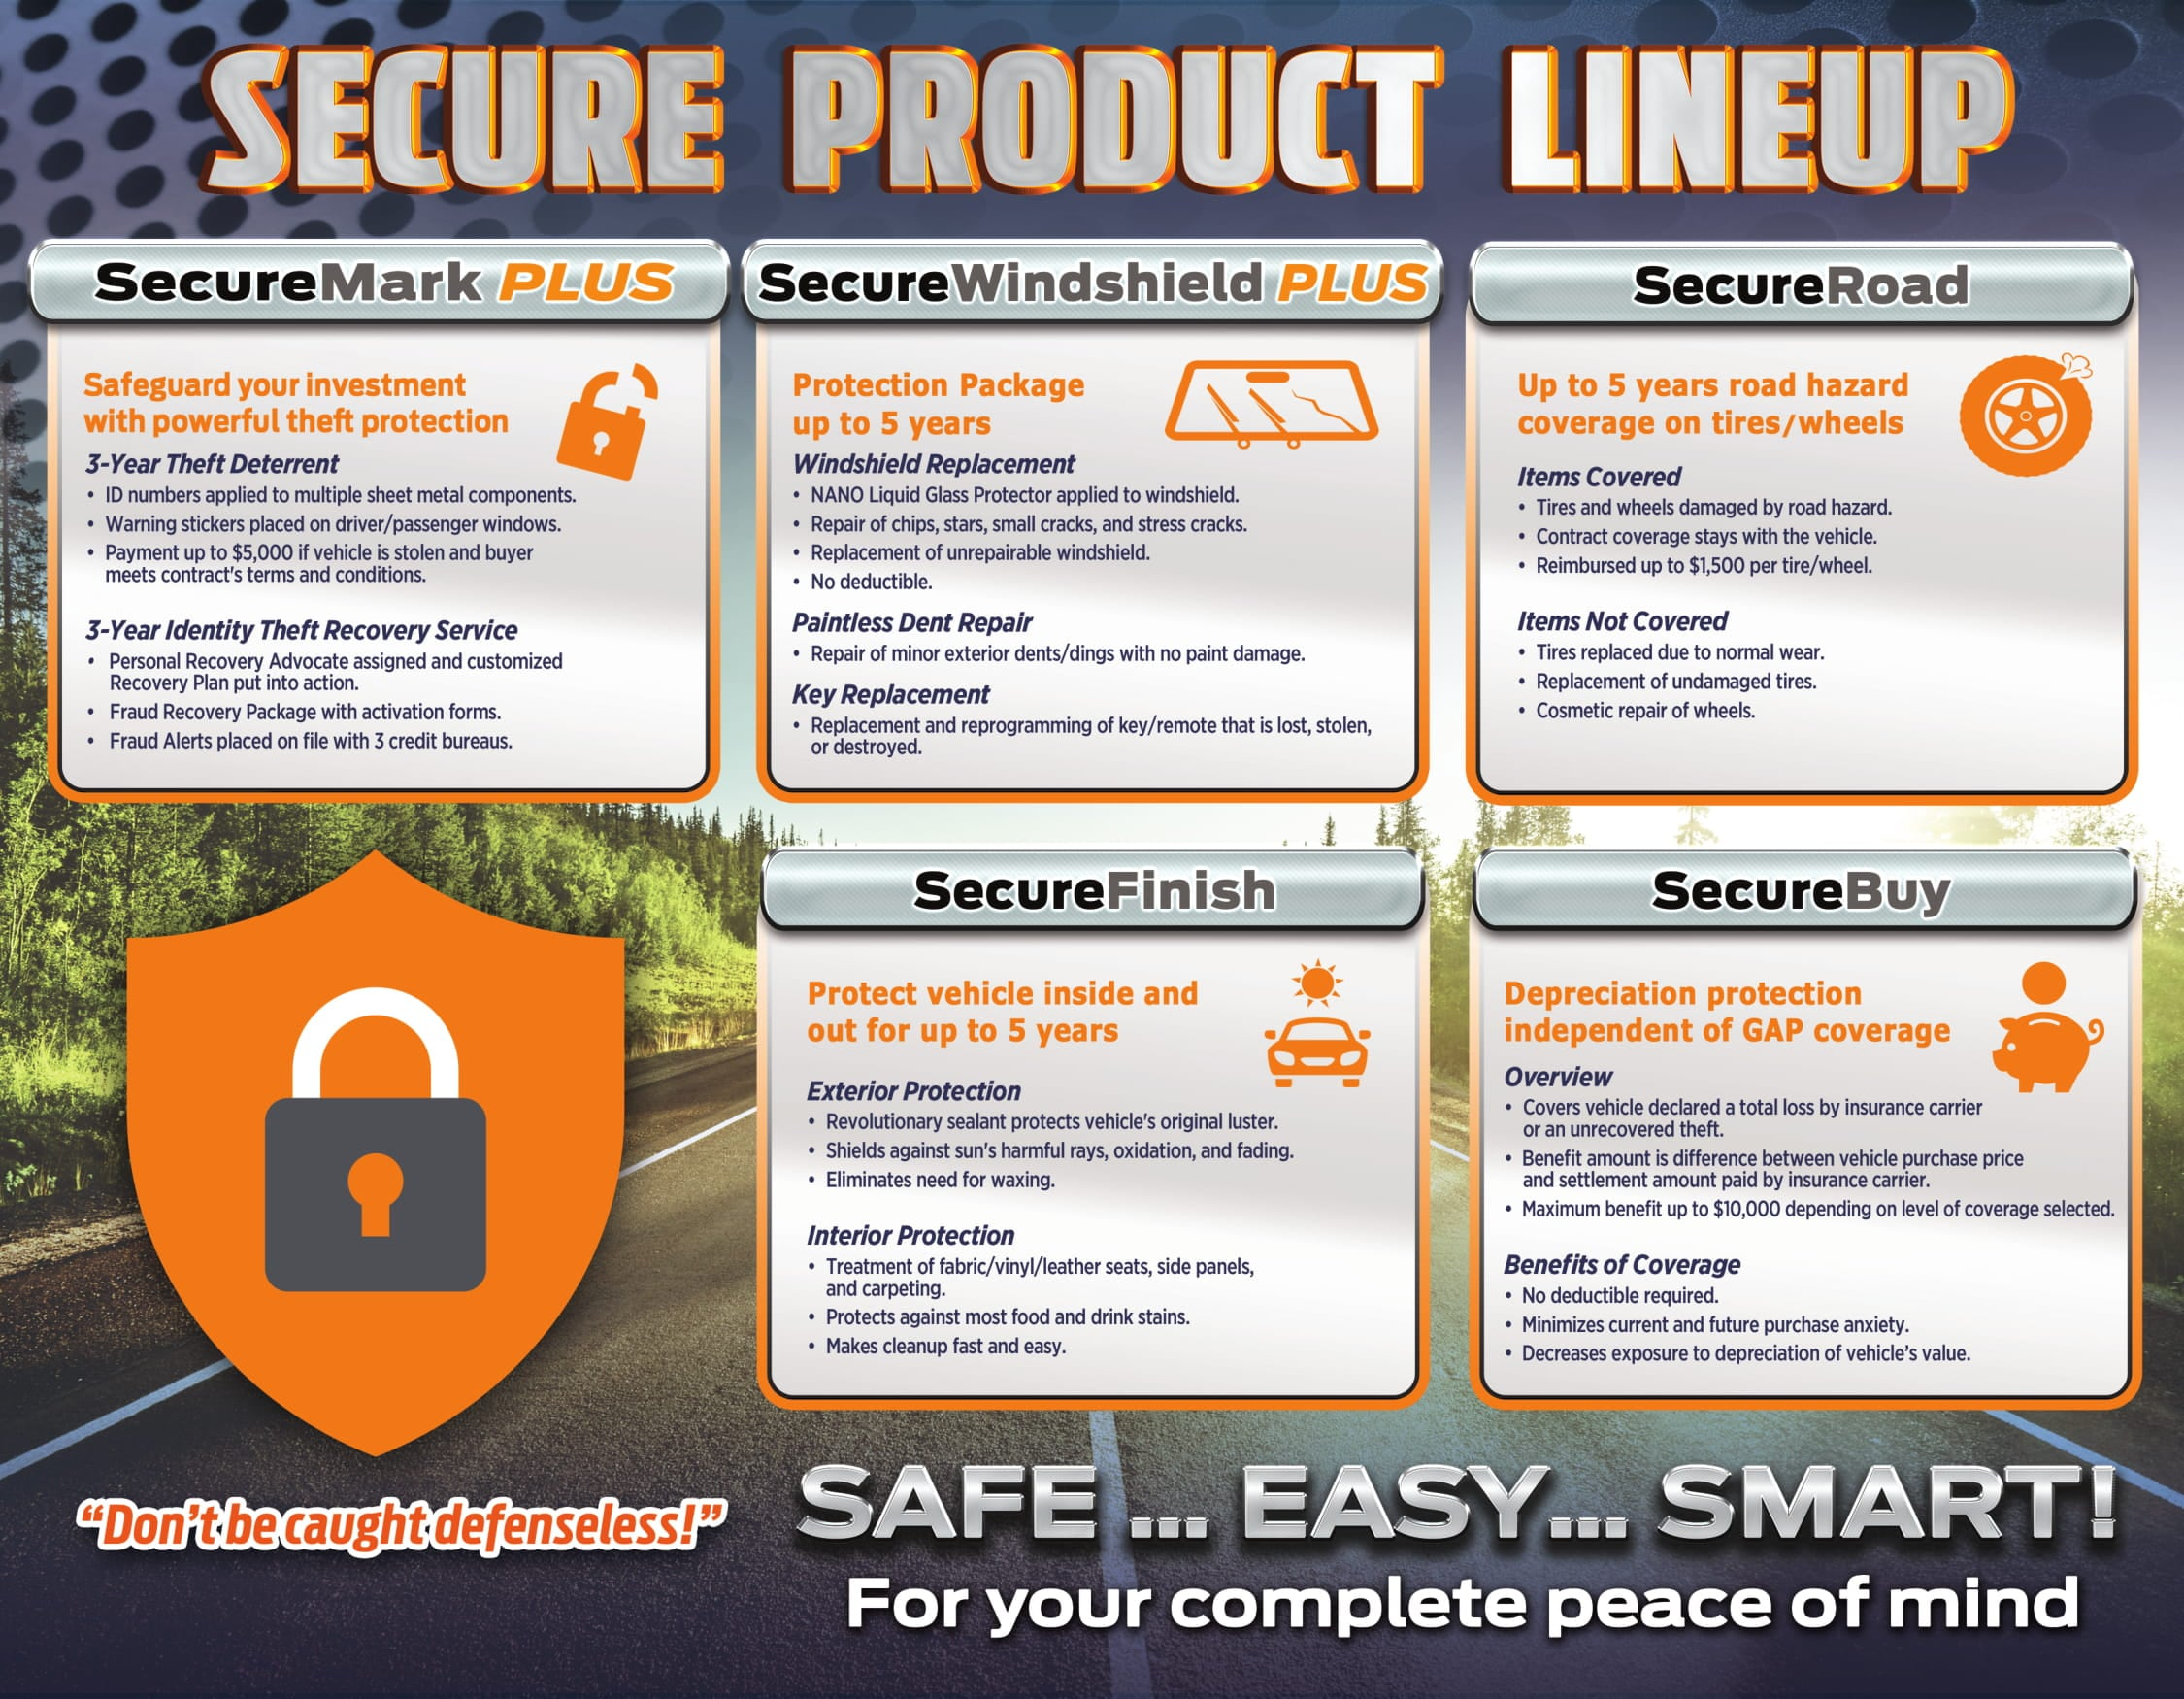 Ford secure product lineup banner